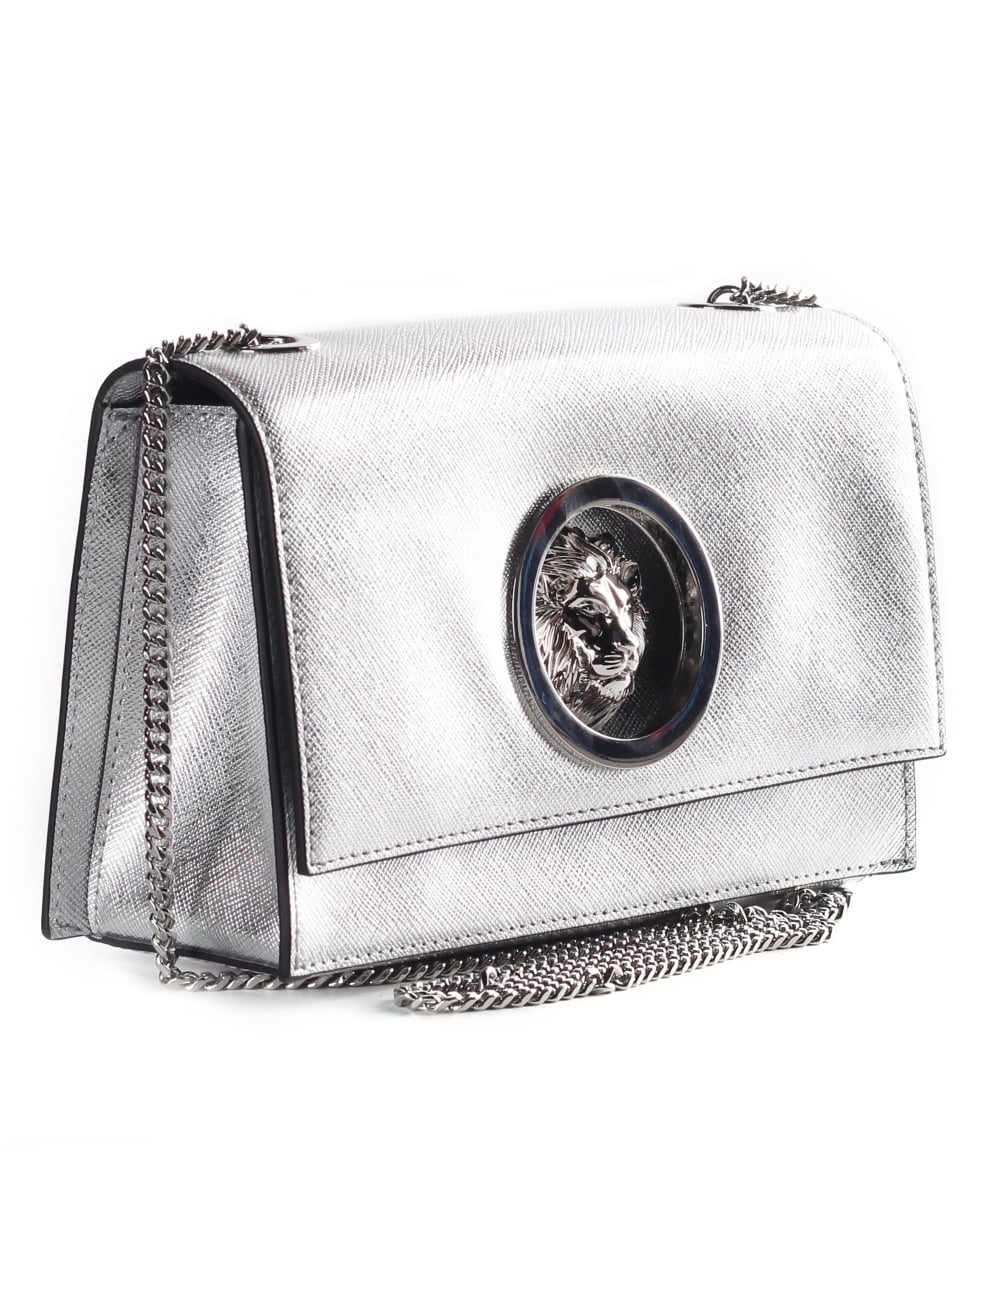 Versus Versace Lion Head Women s Shoulder Bag 8d4e78b614a04